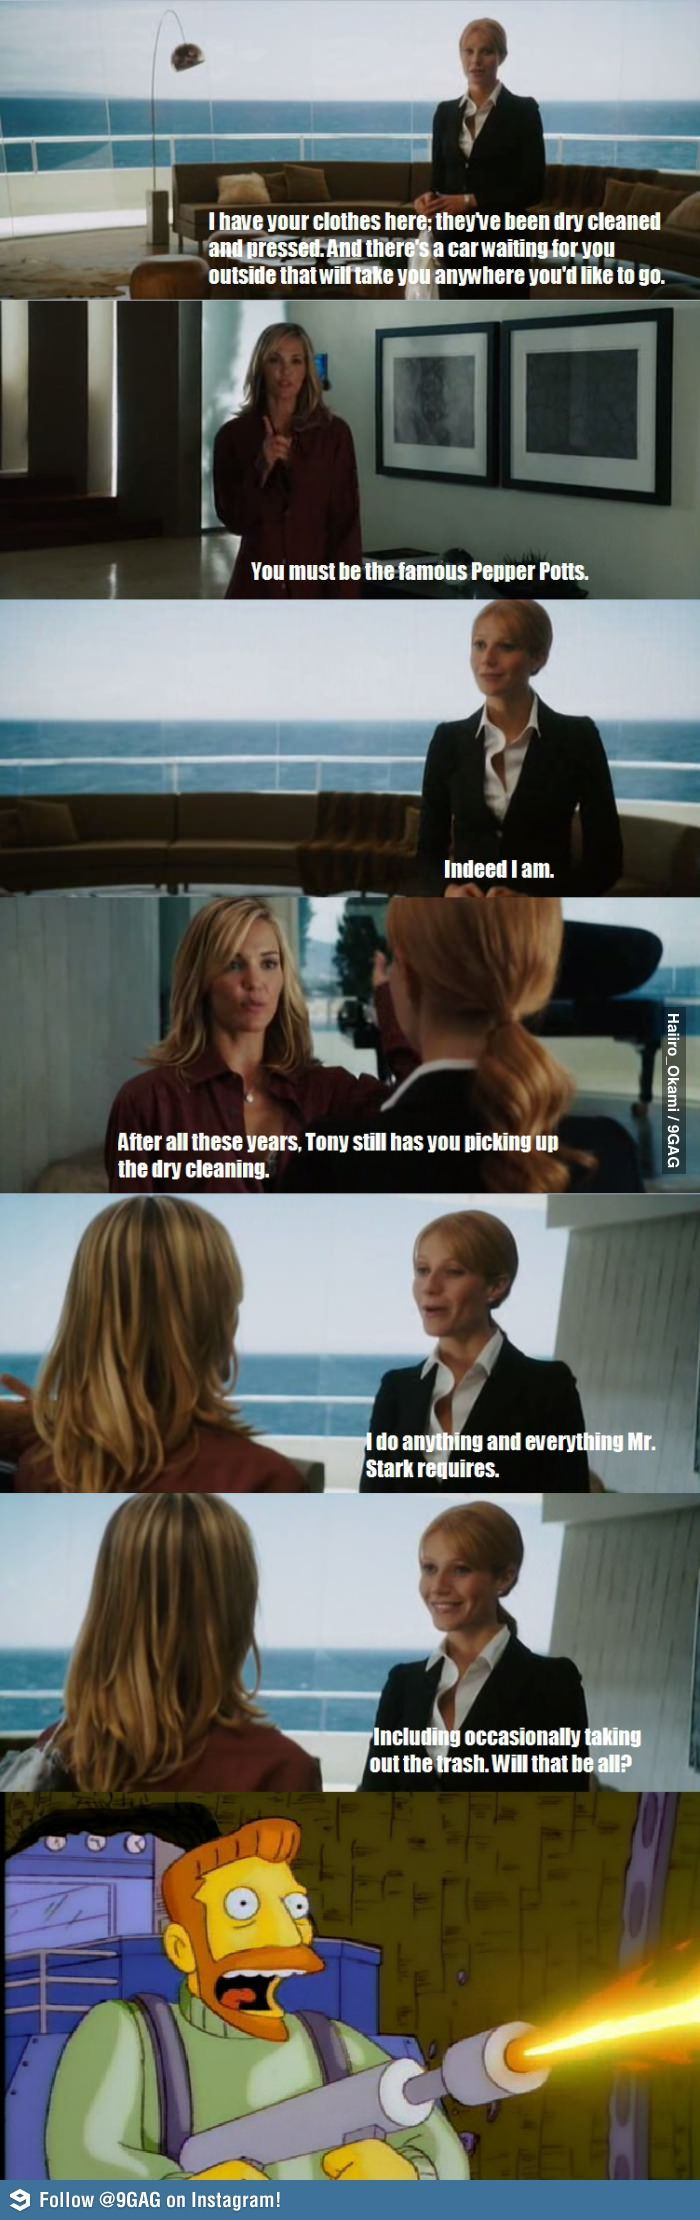 You gotta love Pepper Potts! One of my favorite scenes from her in this movie!